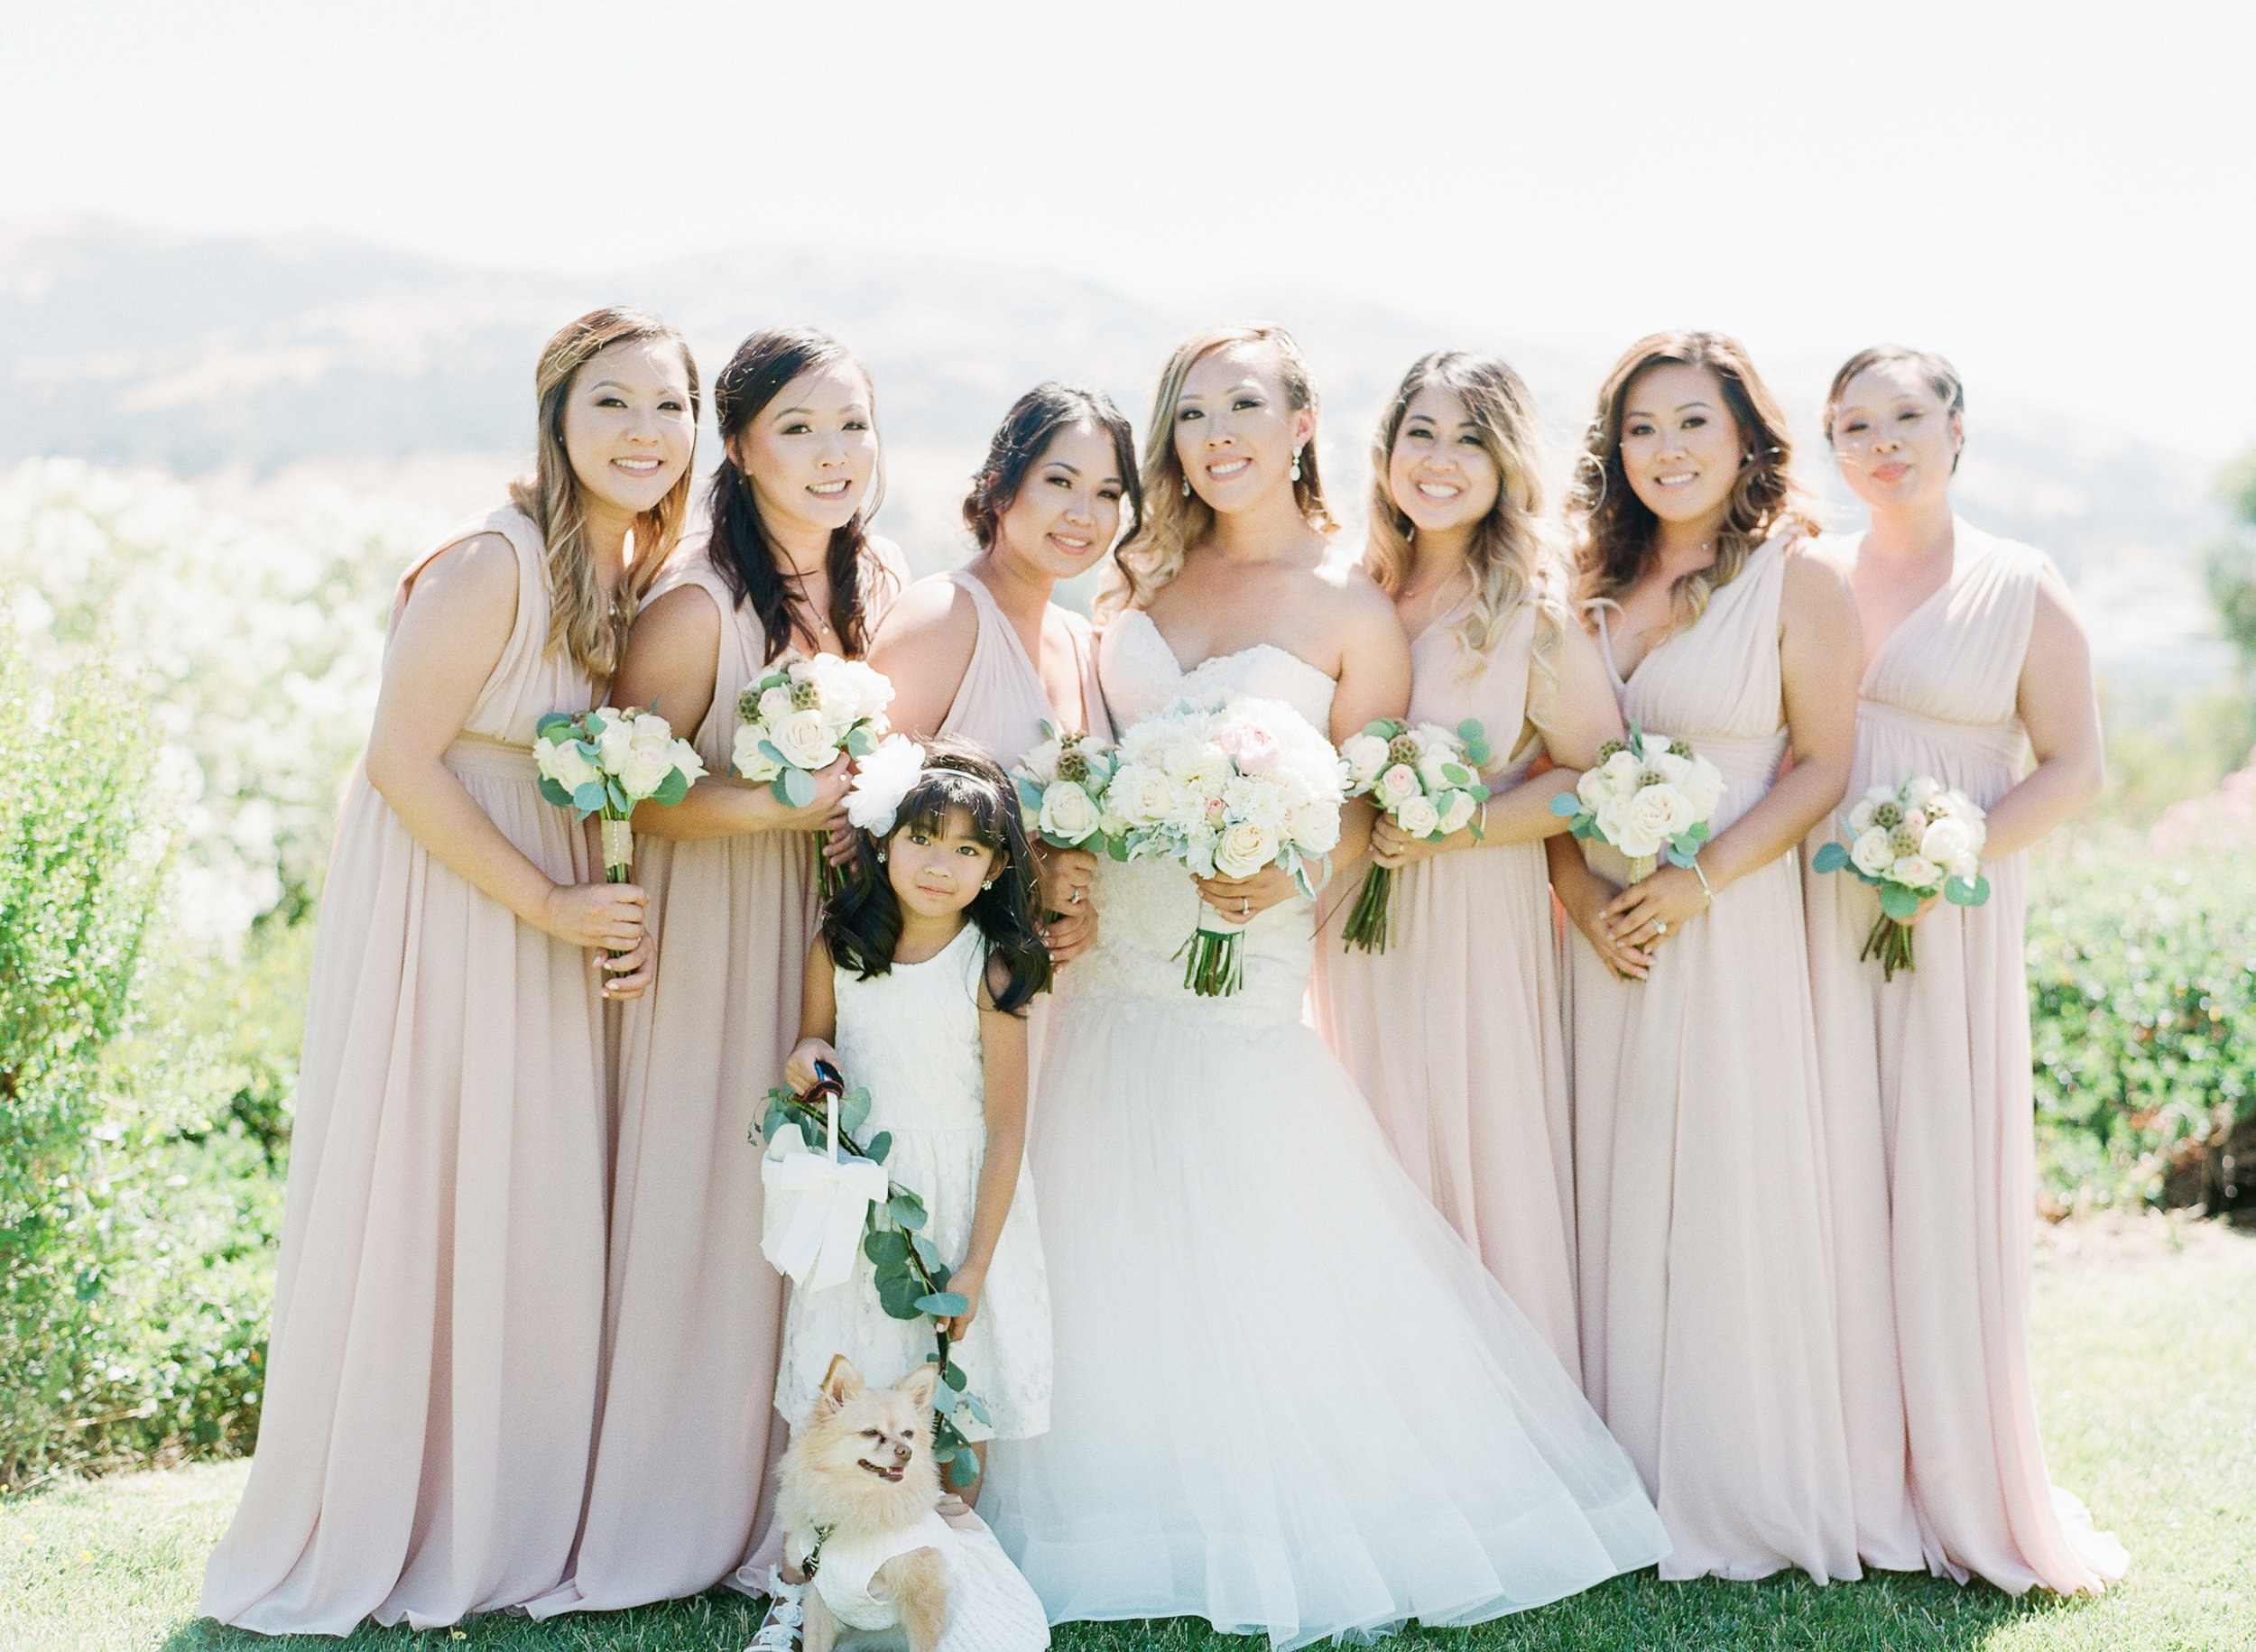 Villa Montalvo Art Center Wedding - Fine Art Jenny Soi Film Photographer